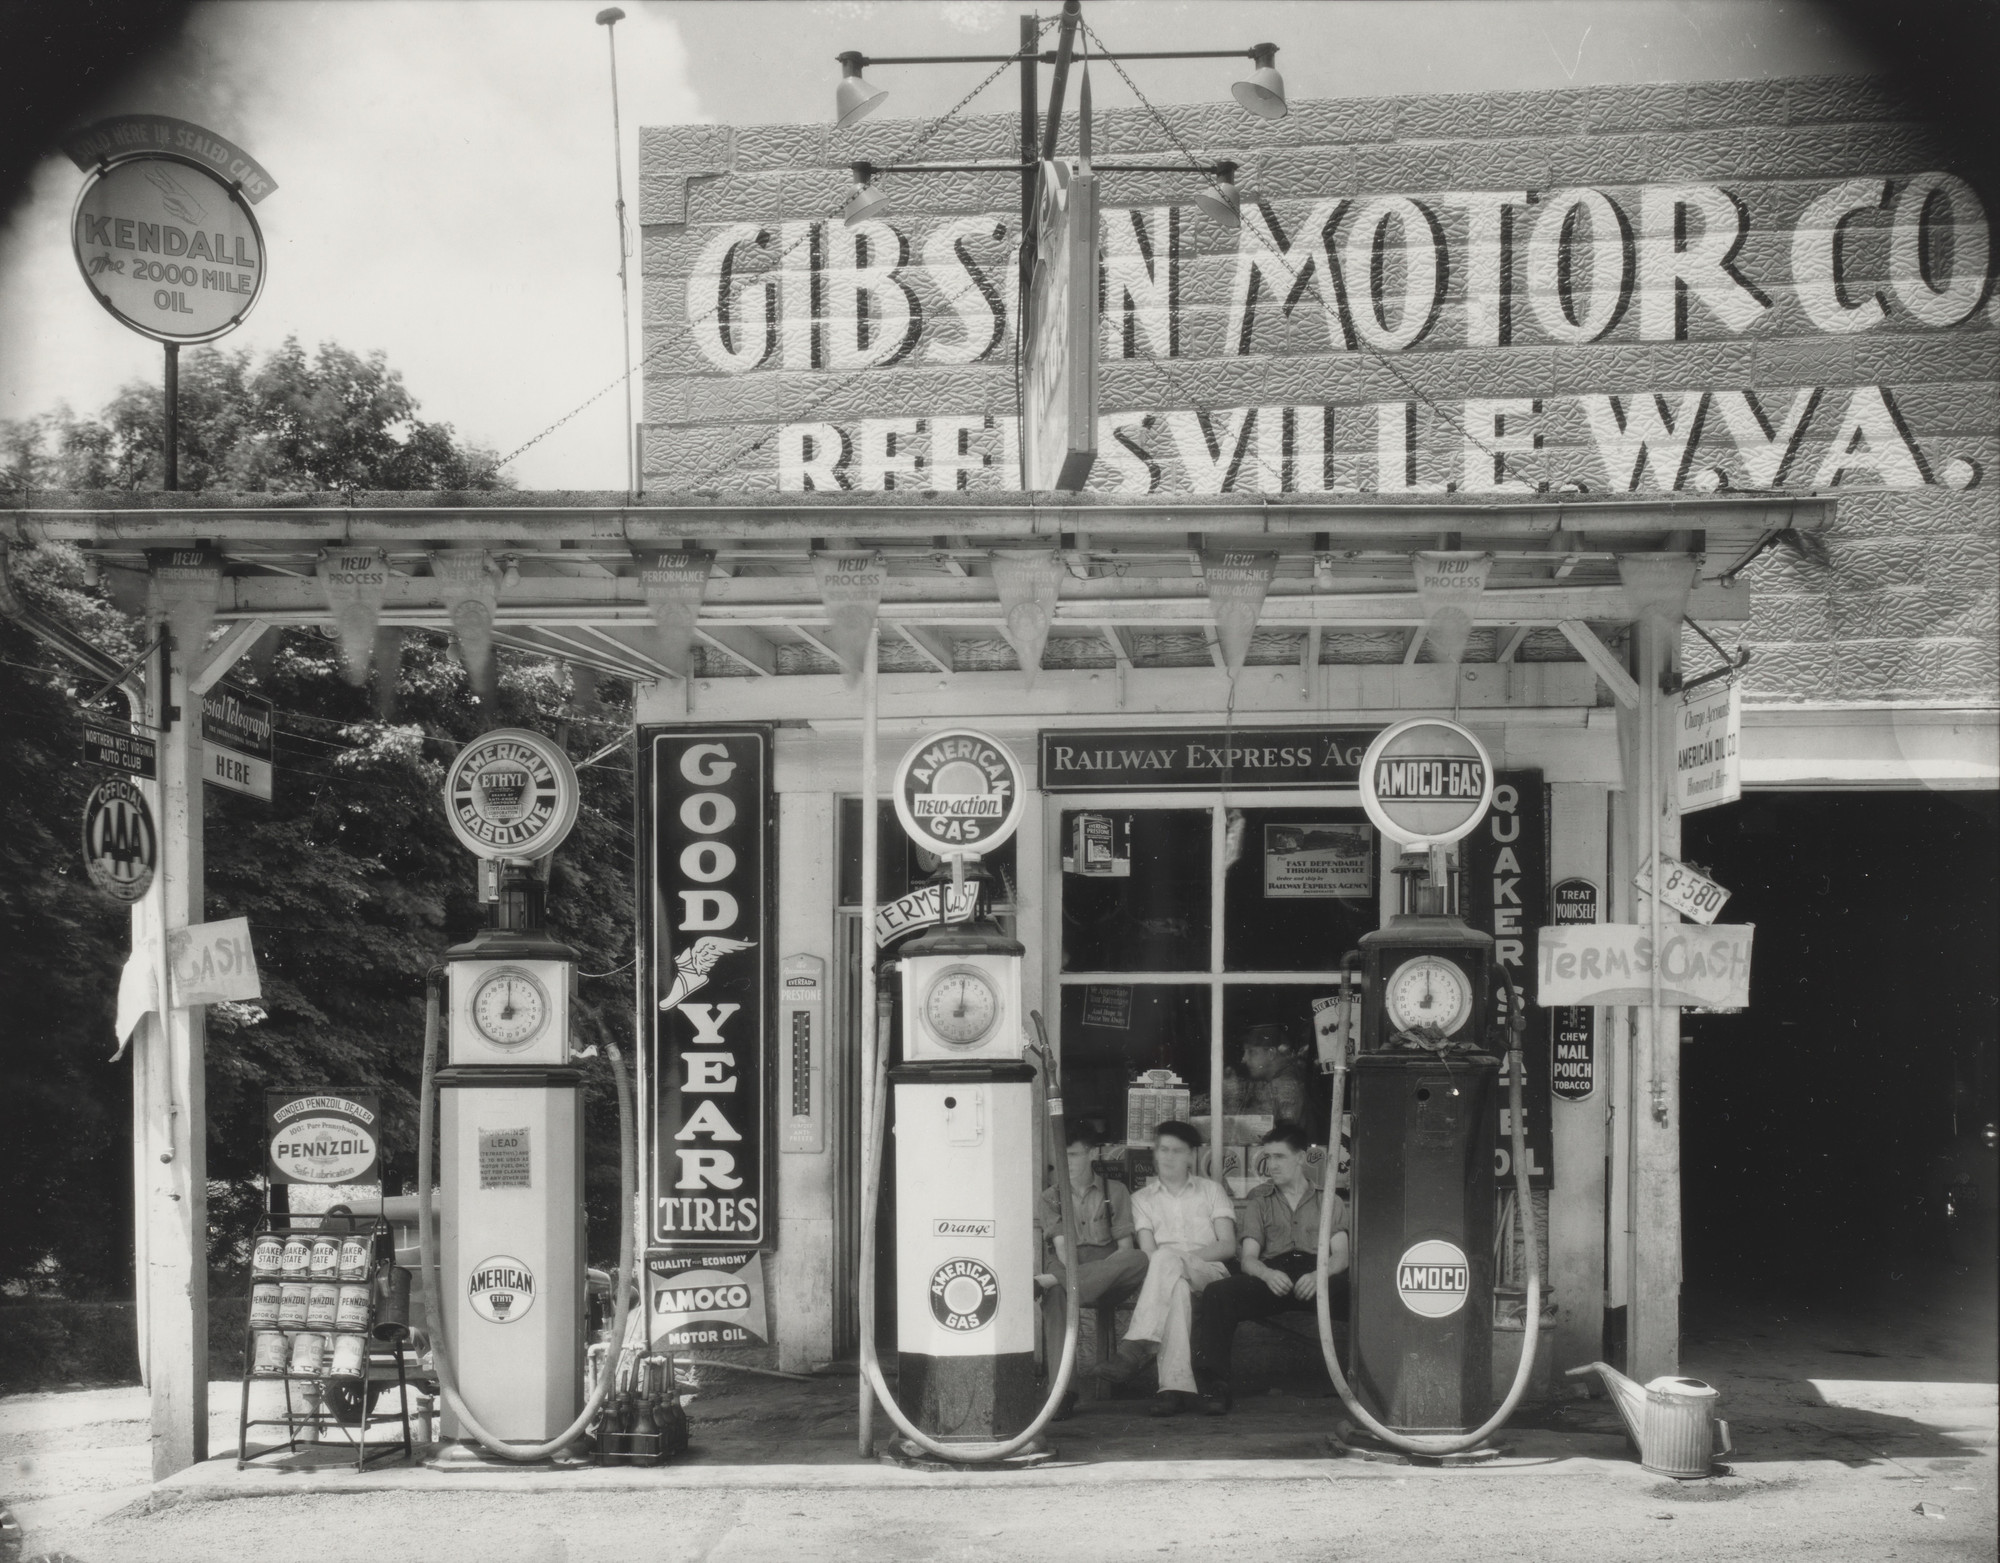 Walker Evans. Gas Station, Reedsville, West Virginia. June 1935